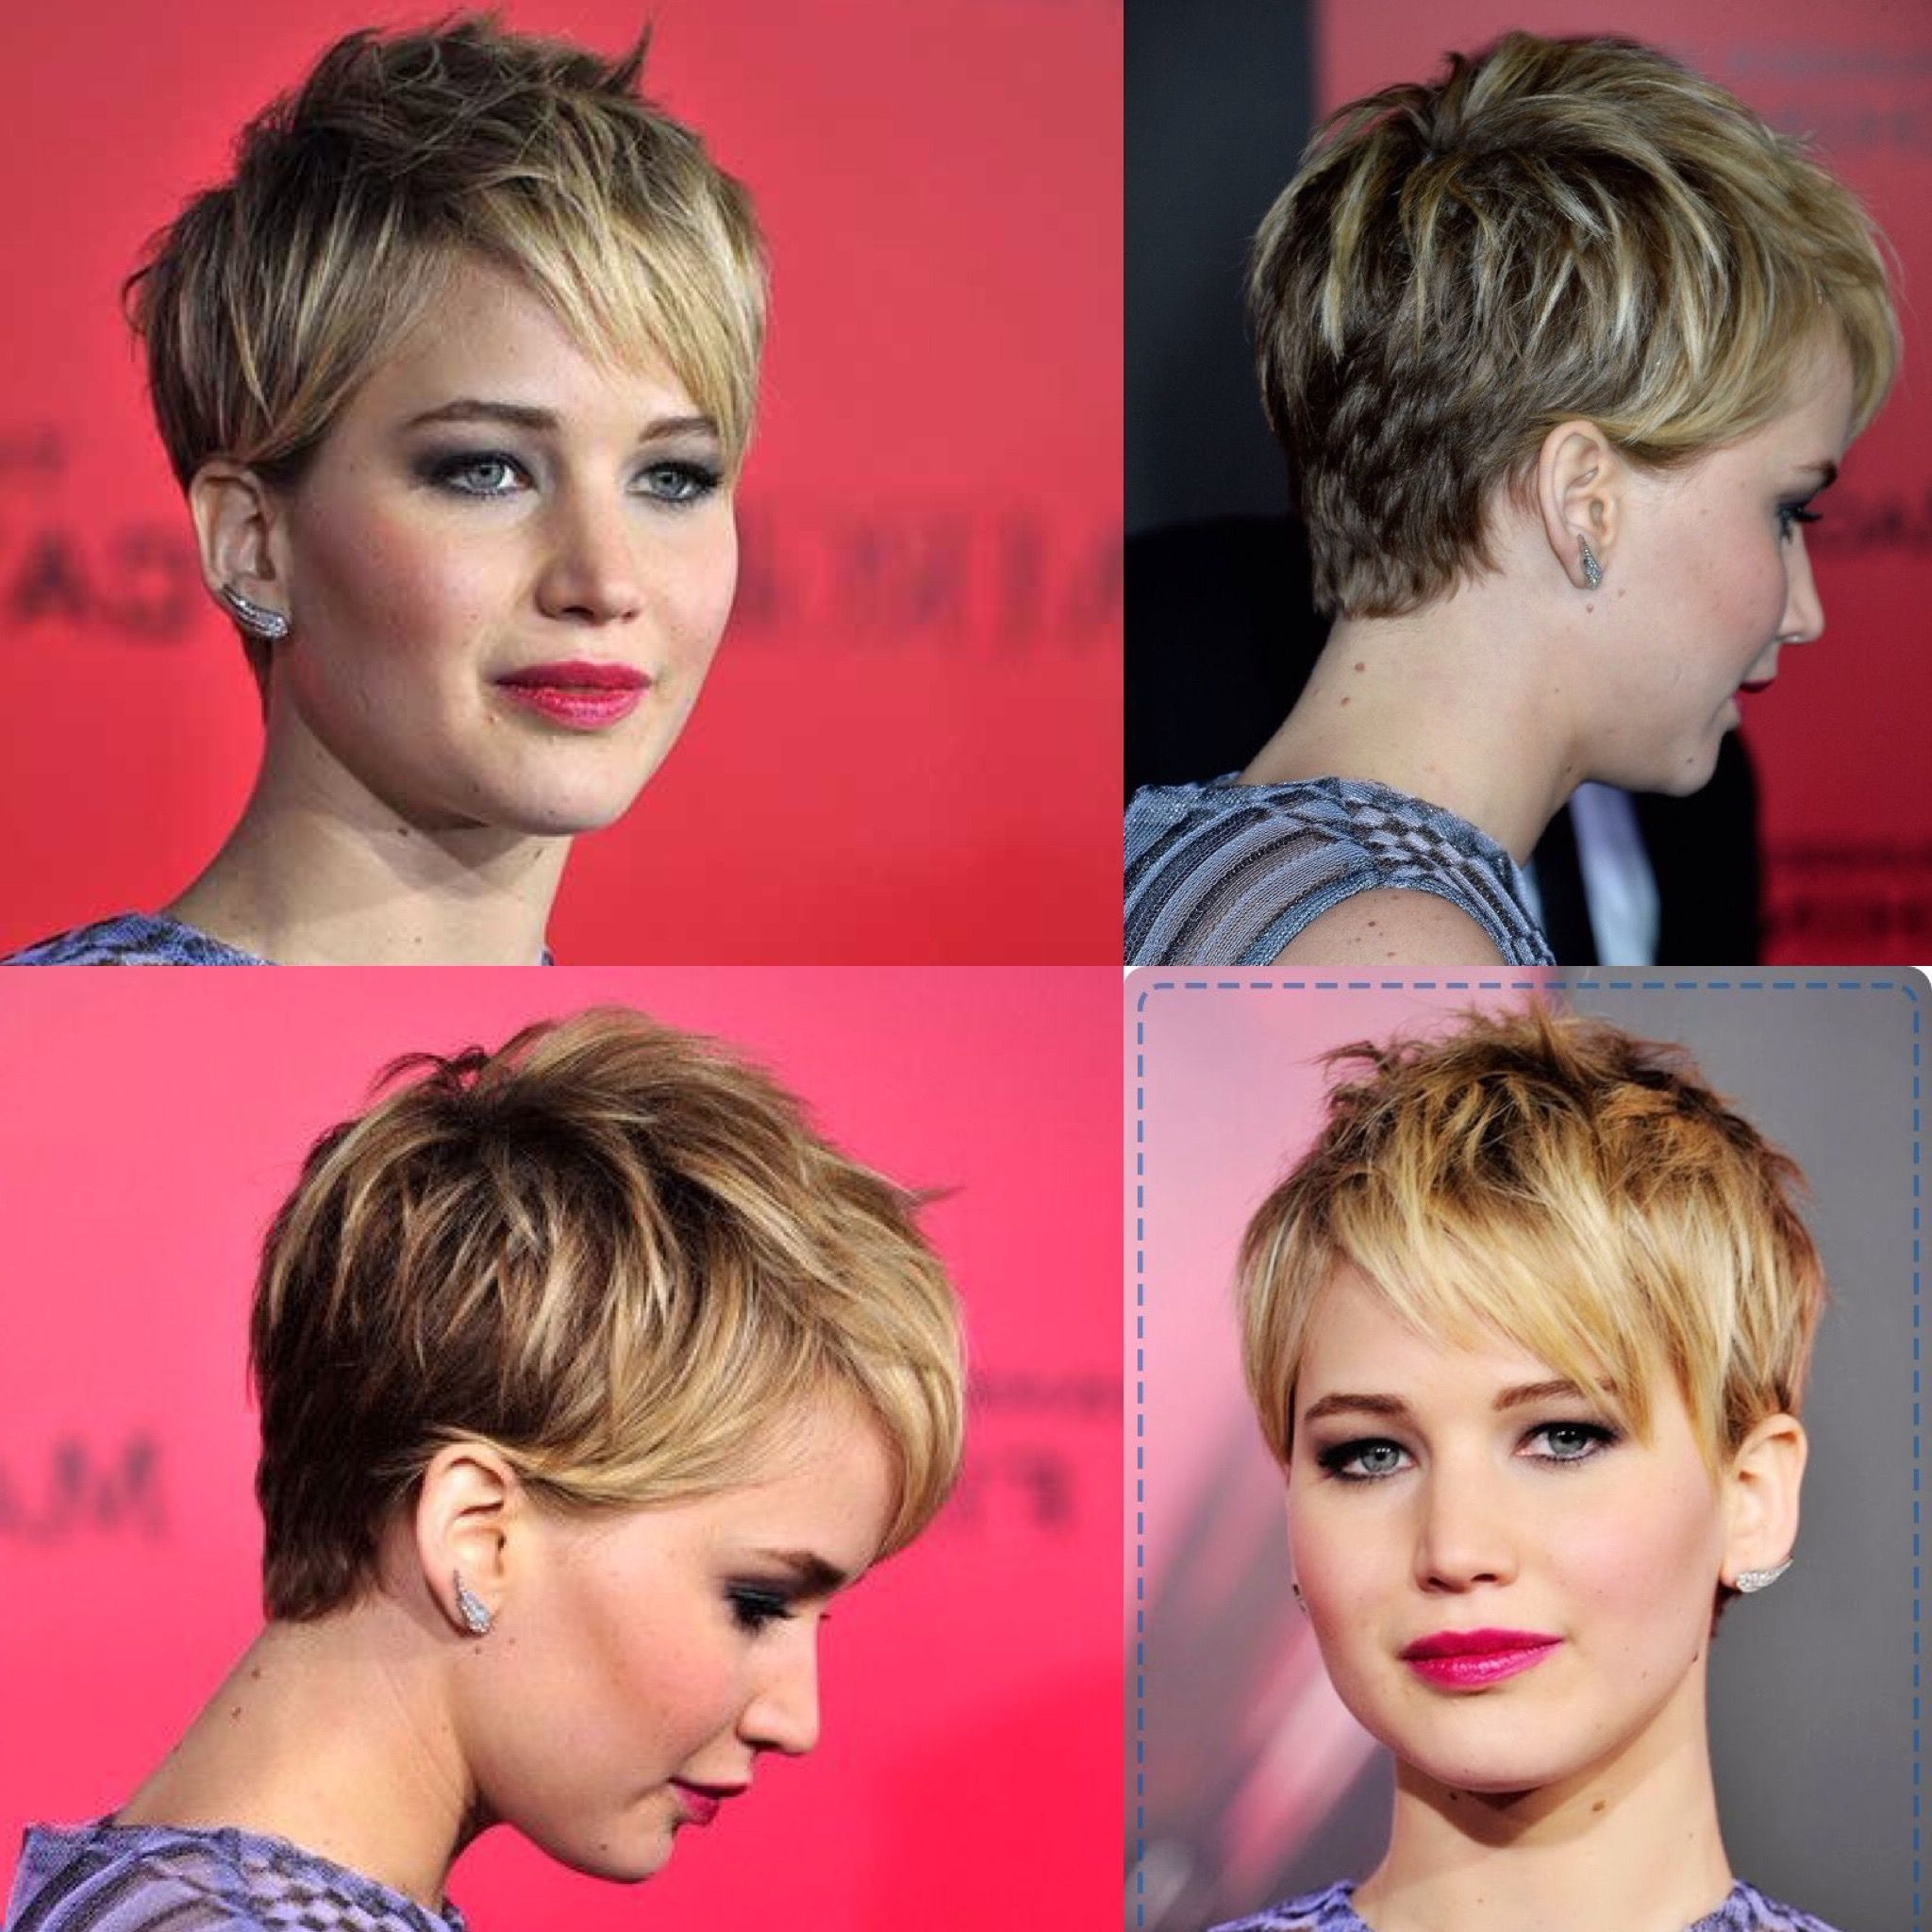 Jennifer Lawrence Pixie Cut | Hair In 2018 | Pinterest | Hair, Short Inside Jennifer Lawrence Short Haircuts (View 2 of 25)